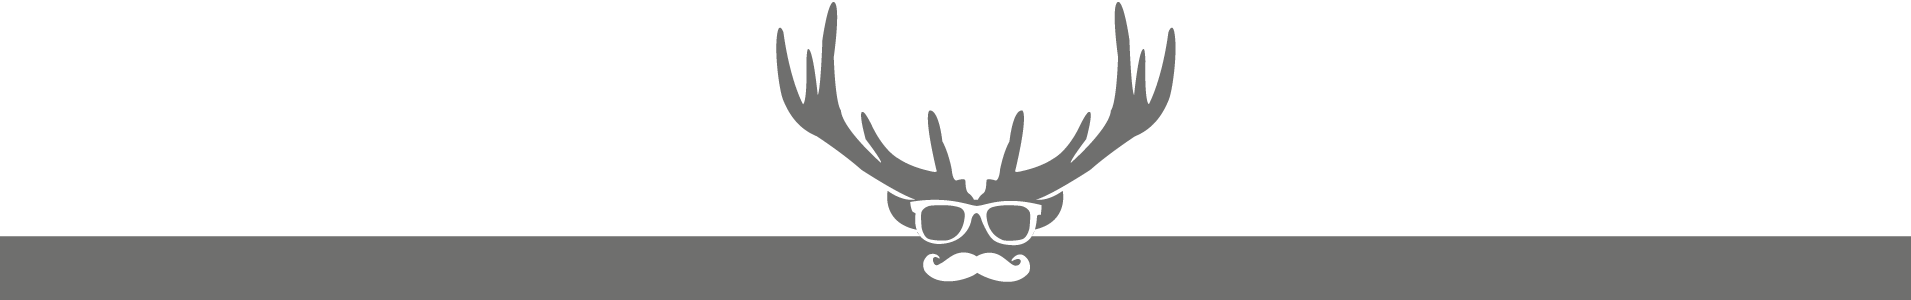 creation-site-web-valence-agence-cerf-a-lunettes-creation-web-agence-com-banniere-cerf-petite